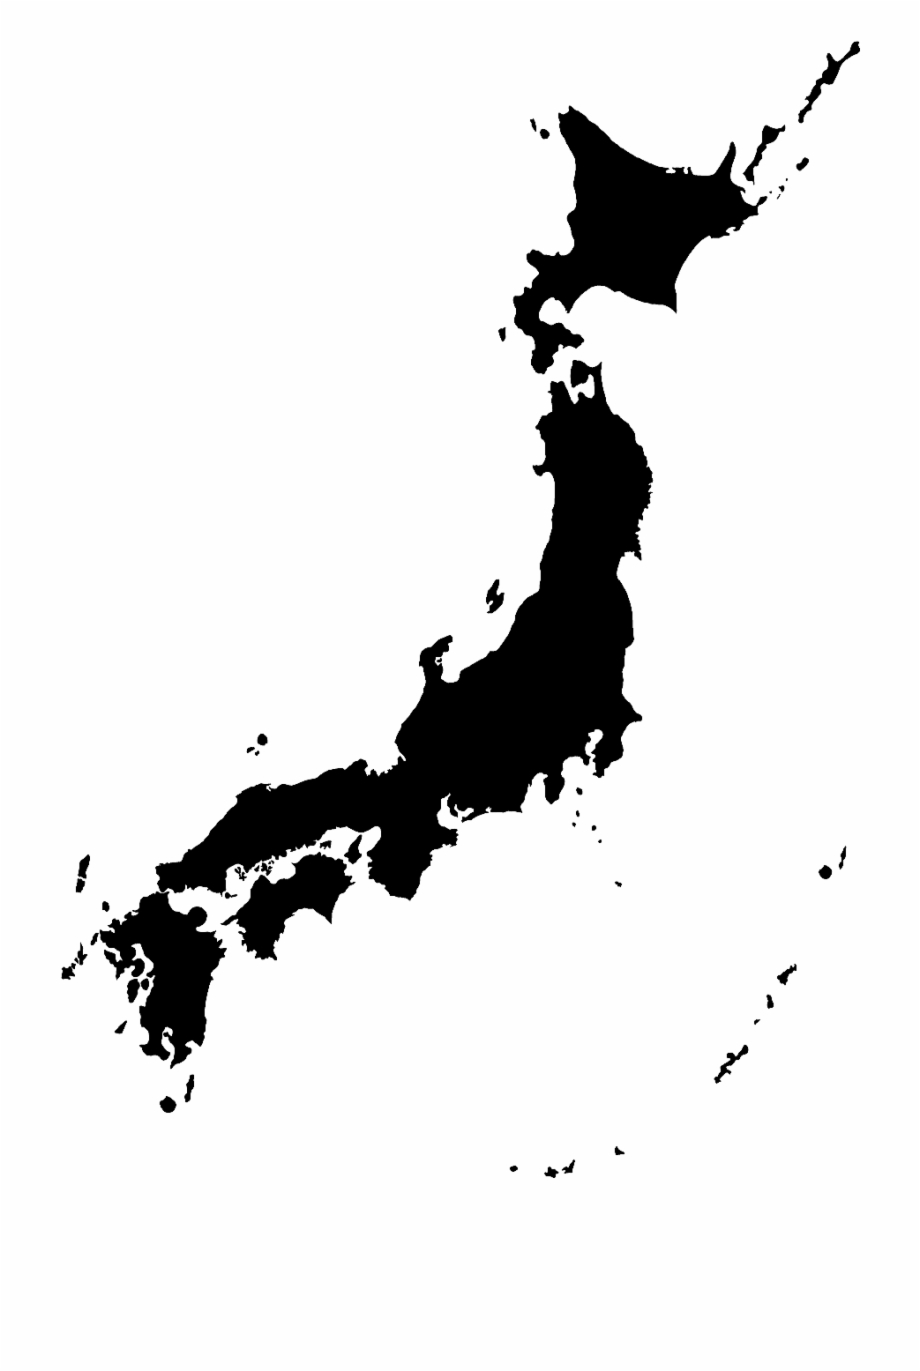 Transparent background free png. Japanese clipart map japan